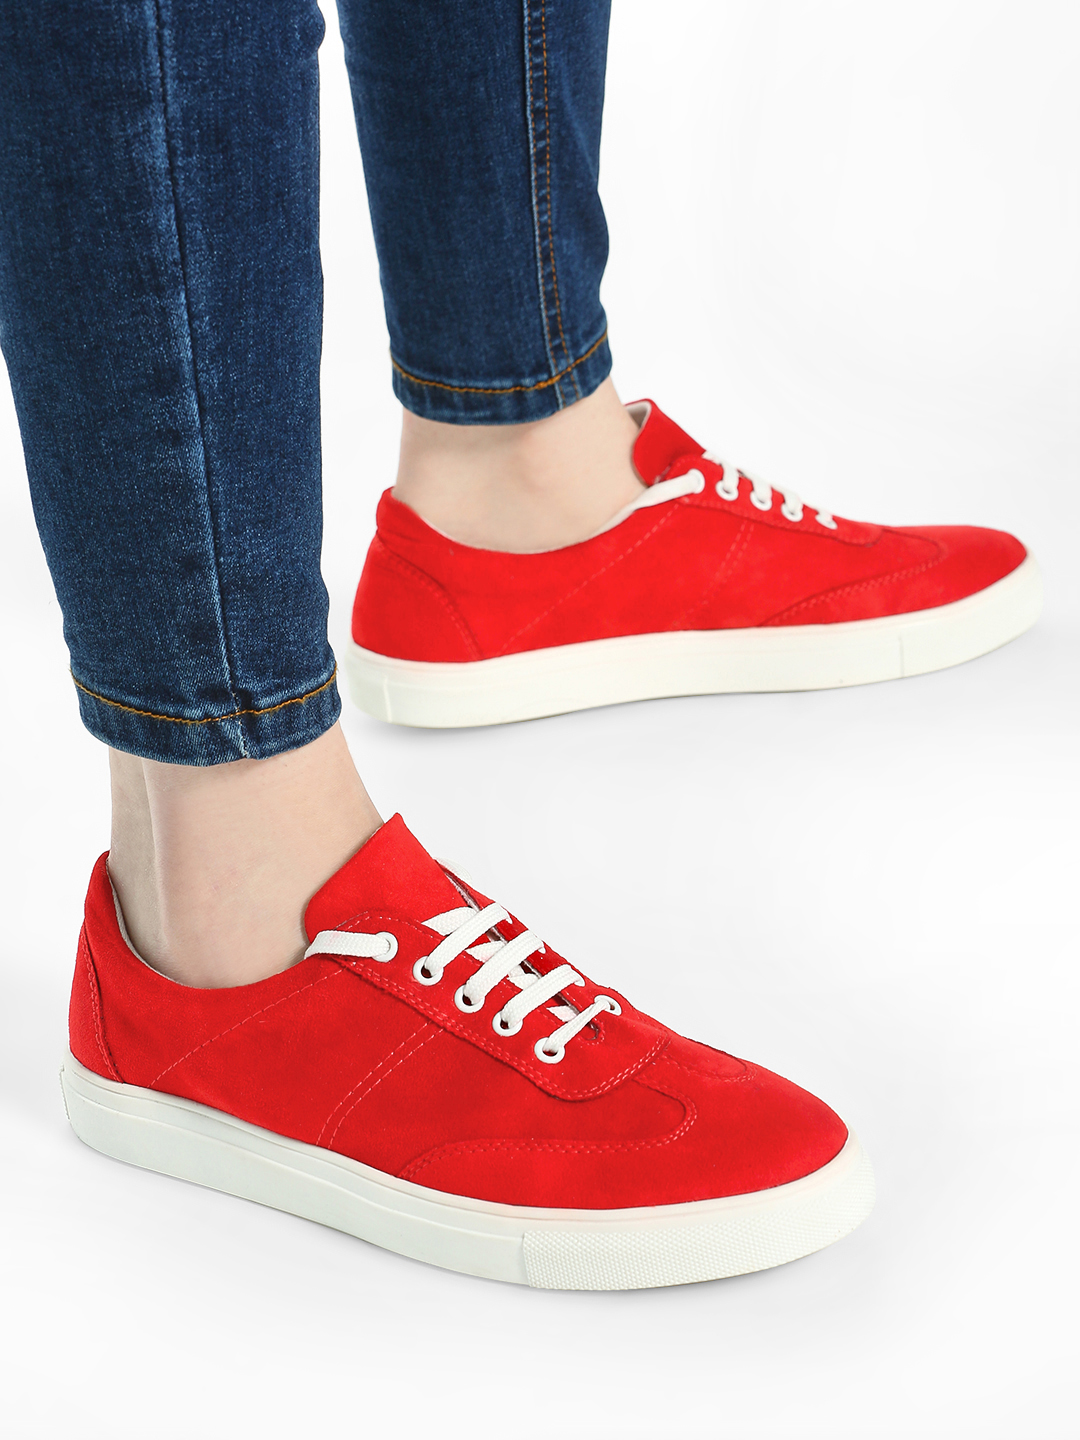 ADORLY Red Suede Lace-Up Sneakers 1